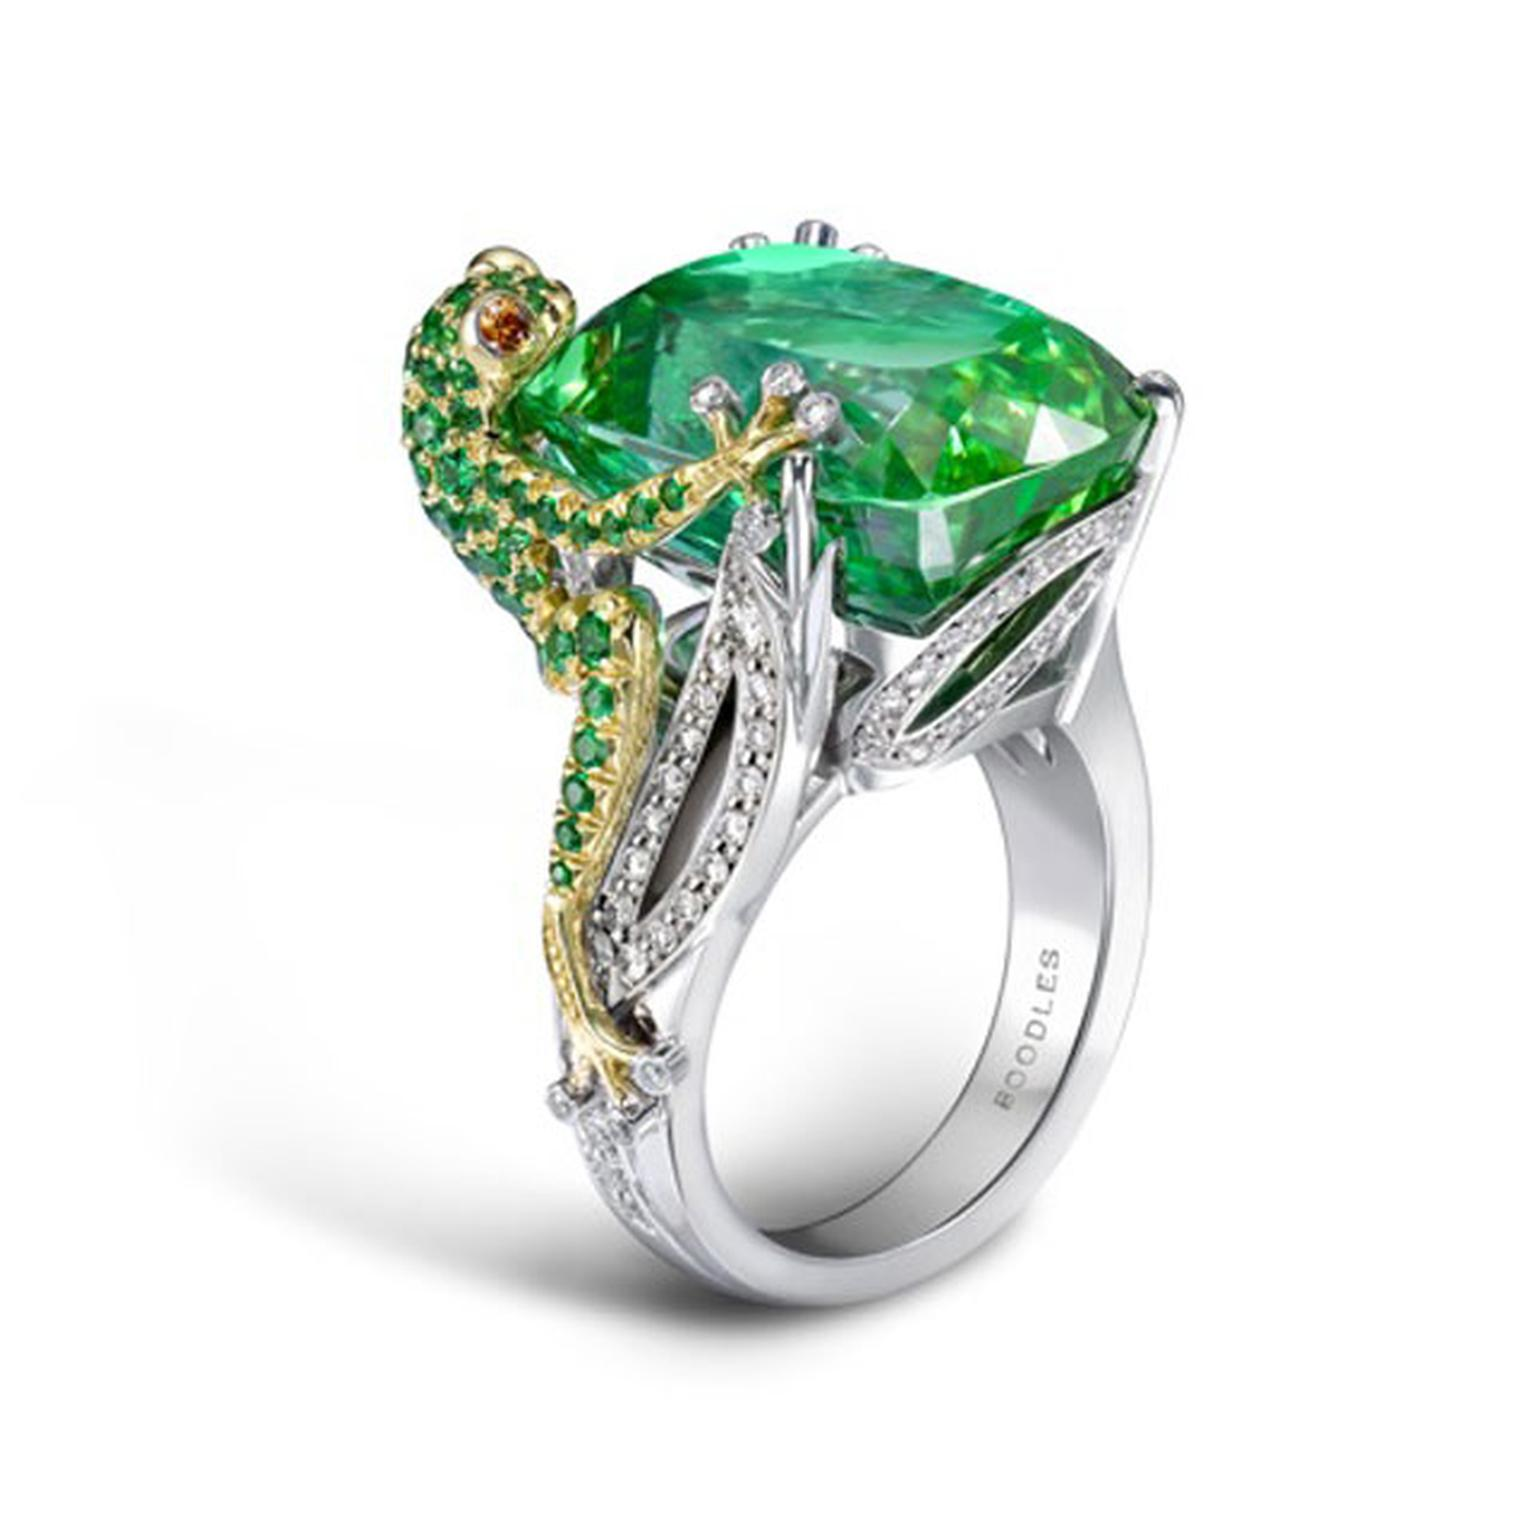 BOODLES,-Green-Frog.-A-green-tourmaline-frog-design-ring-in-platinum-and-18ct-yellow-gold.-The-centre-stone-is-over-20cts.-His-little-body-is-made-up-of-tourmaline-stones. £36,200